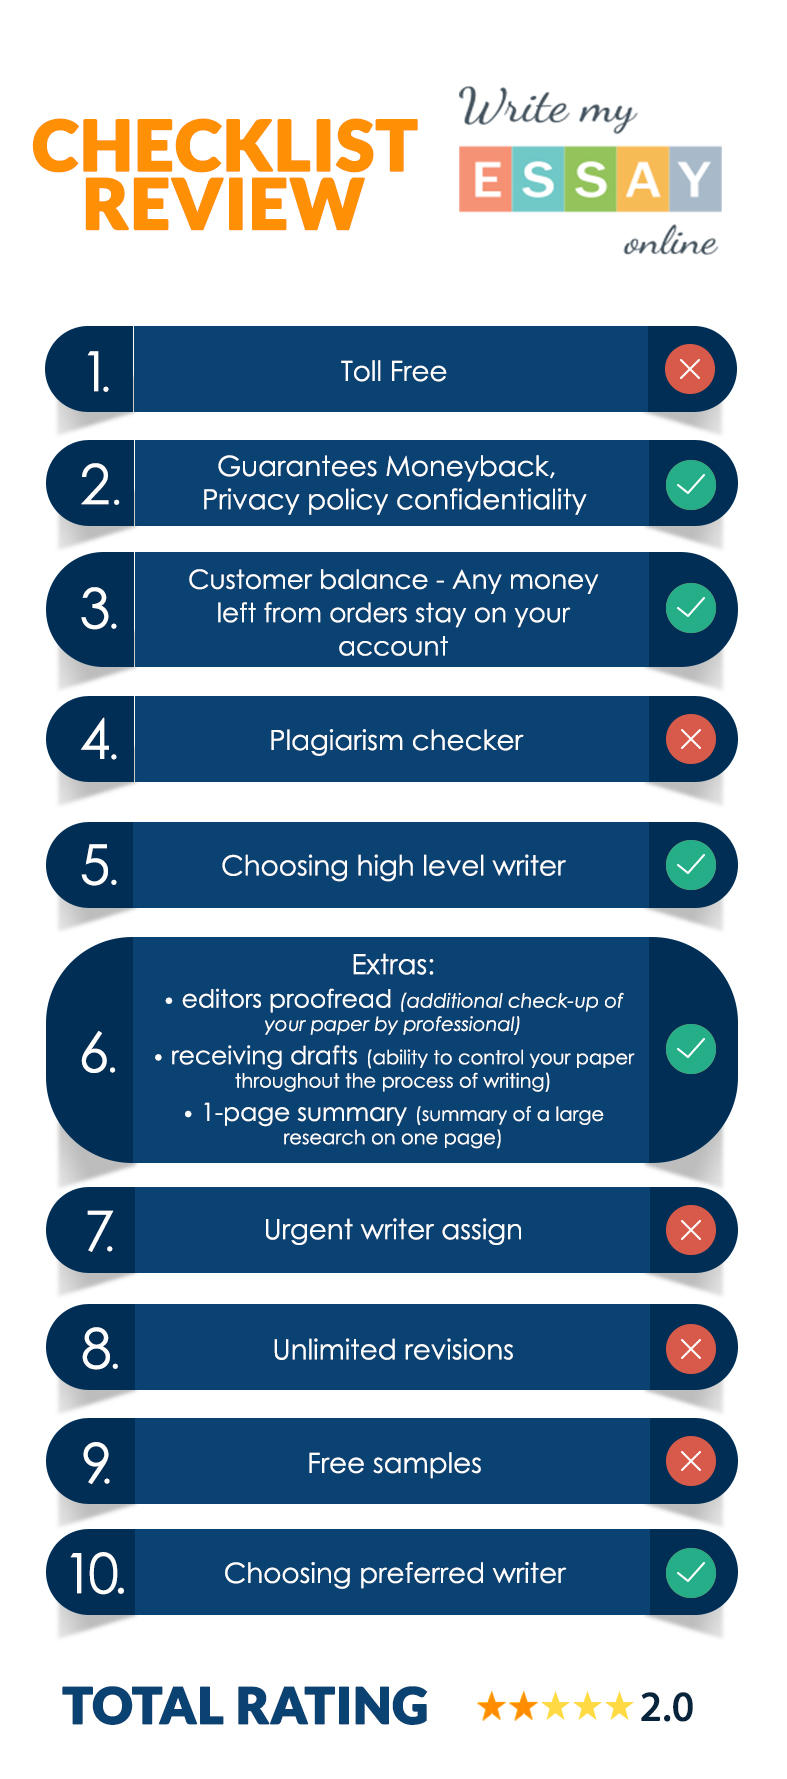 Latest Infographic on WriteMyEssayOnline by bestessayreview